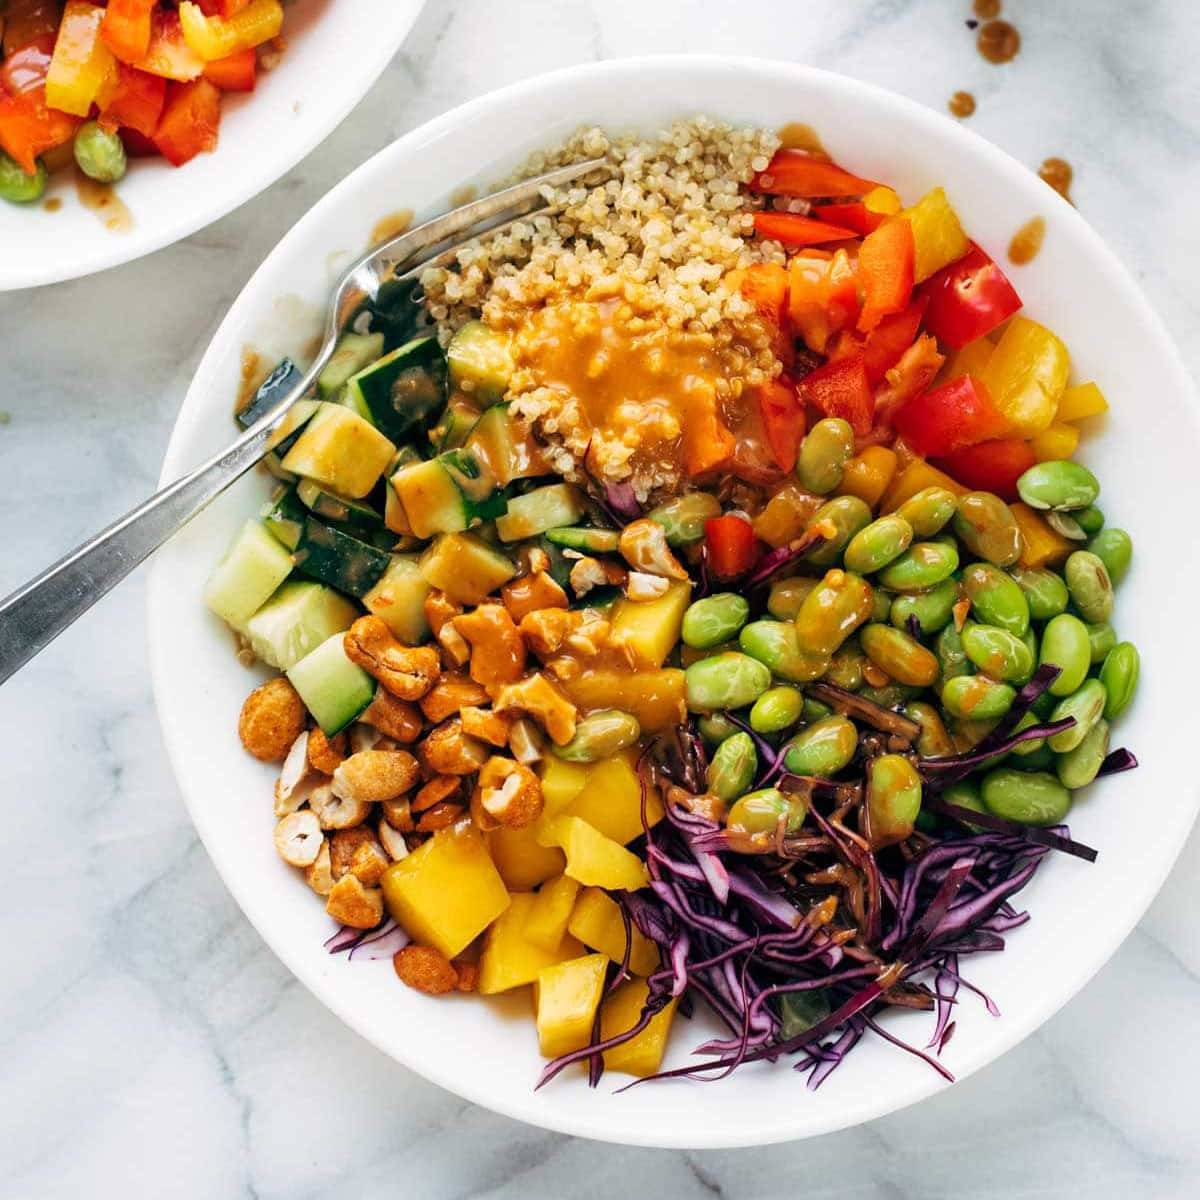 Quinoa salad with veggies in a bowl with a spoon.